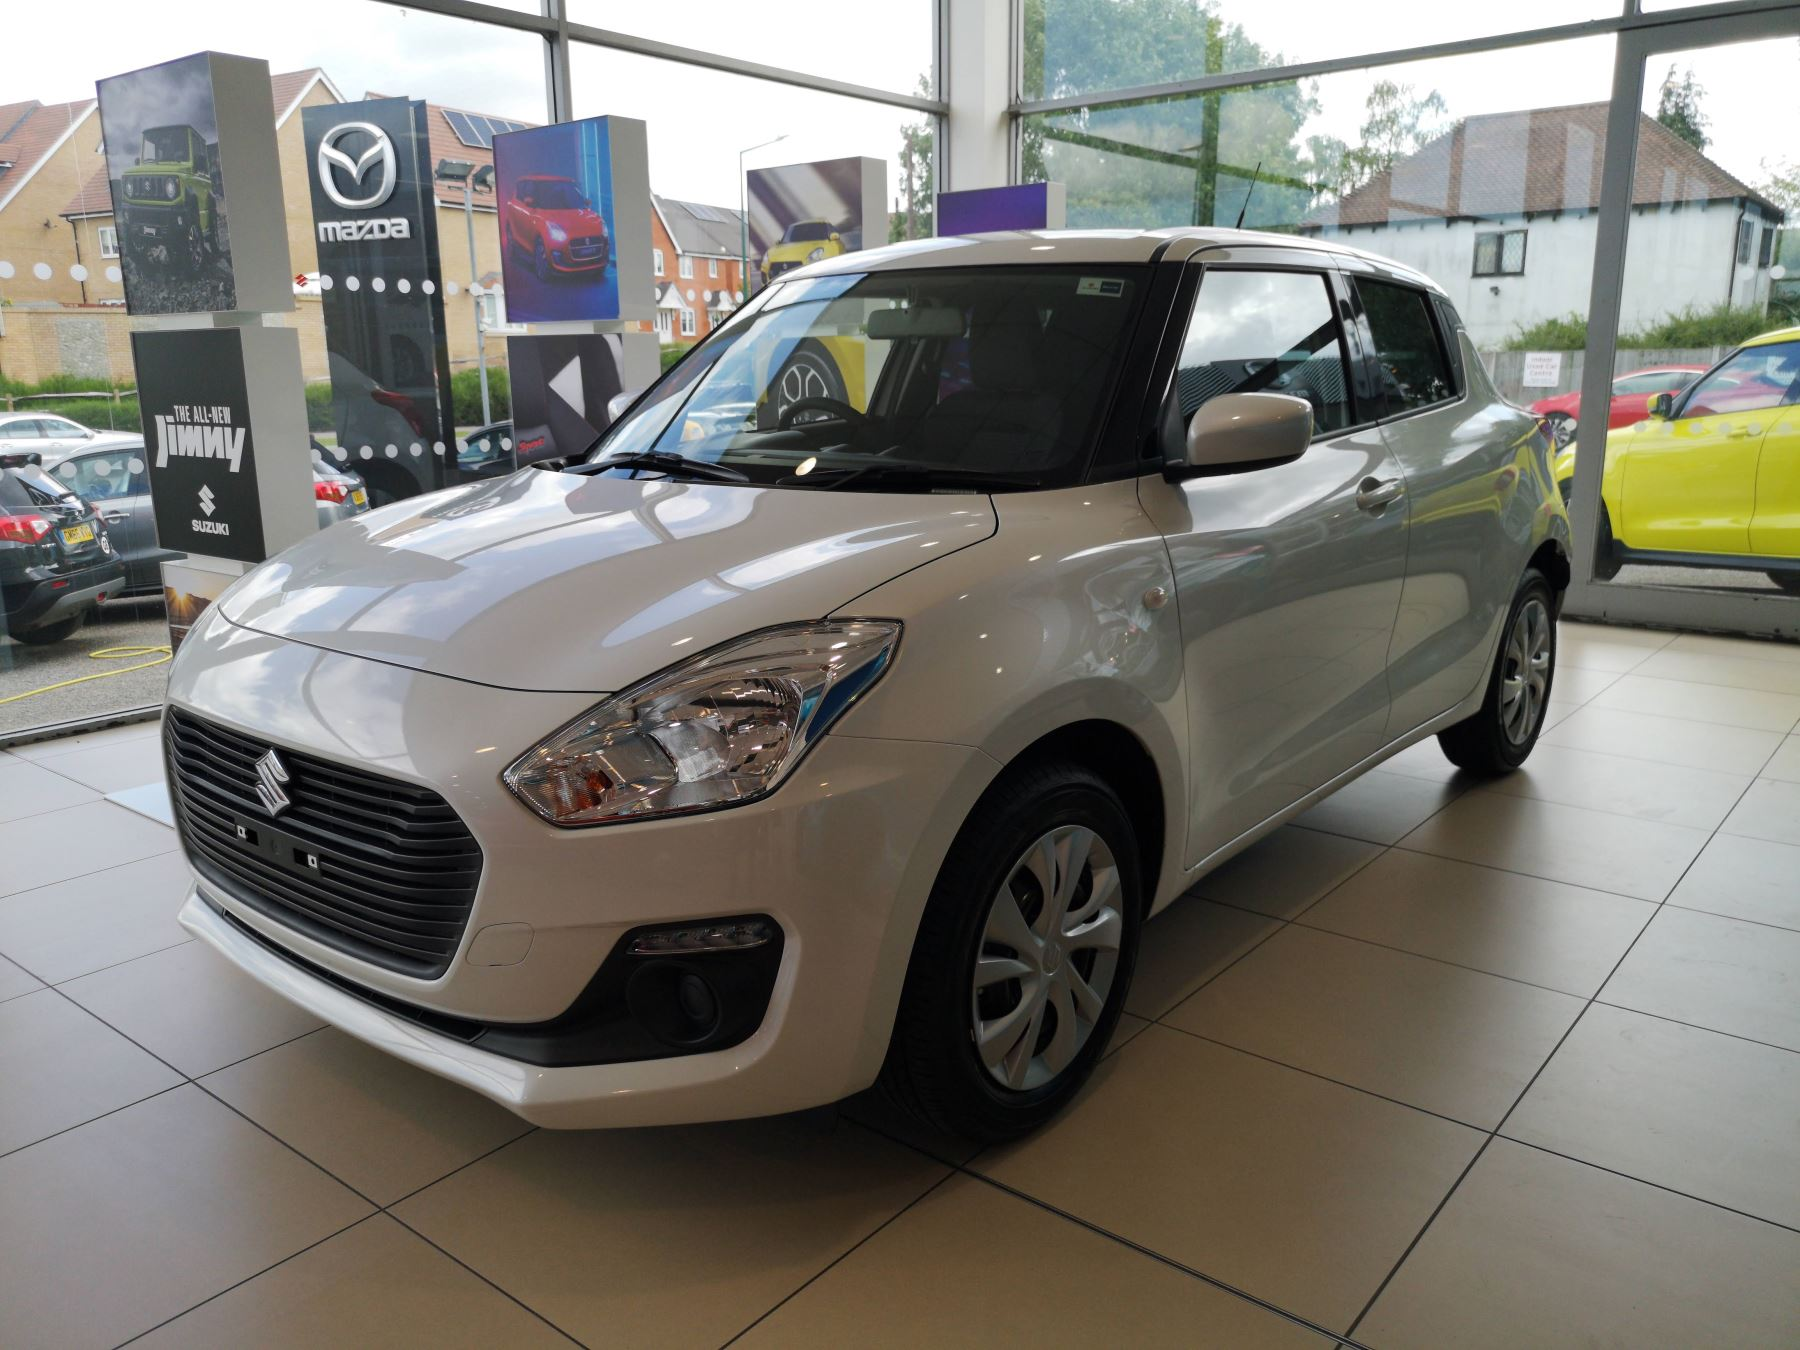 Suzuki Swift 1.2 Dualjet SZ3 5 door Hatchback (17MY)